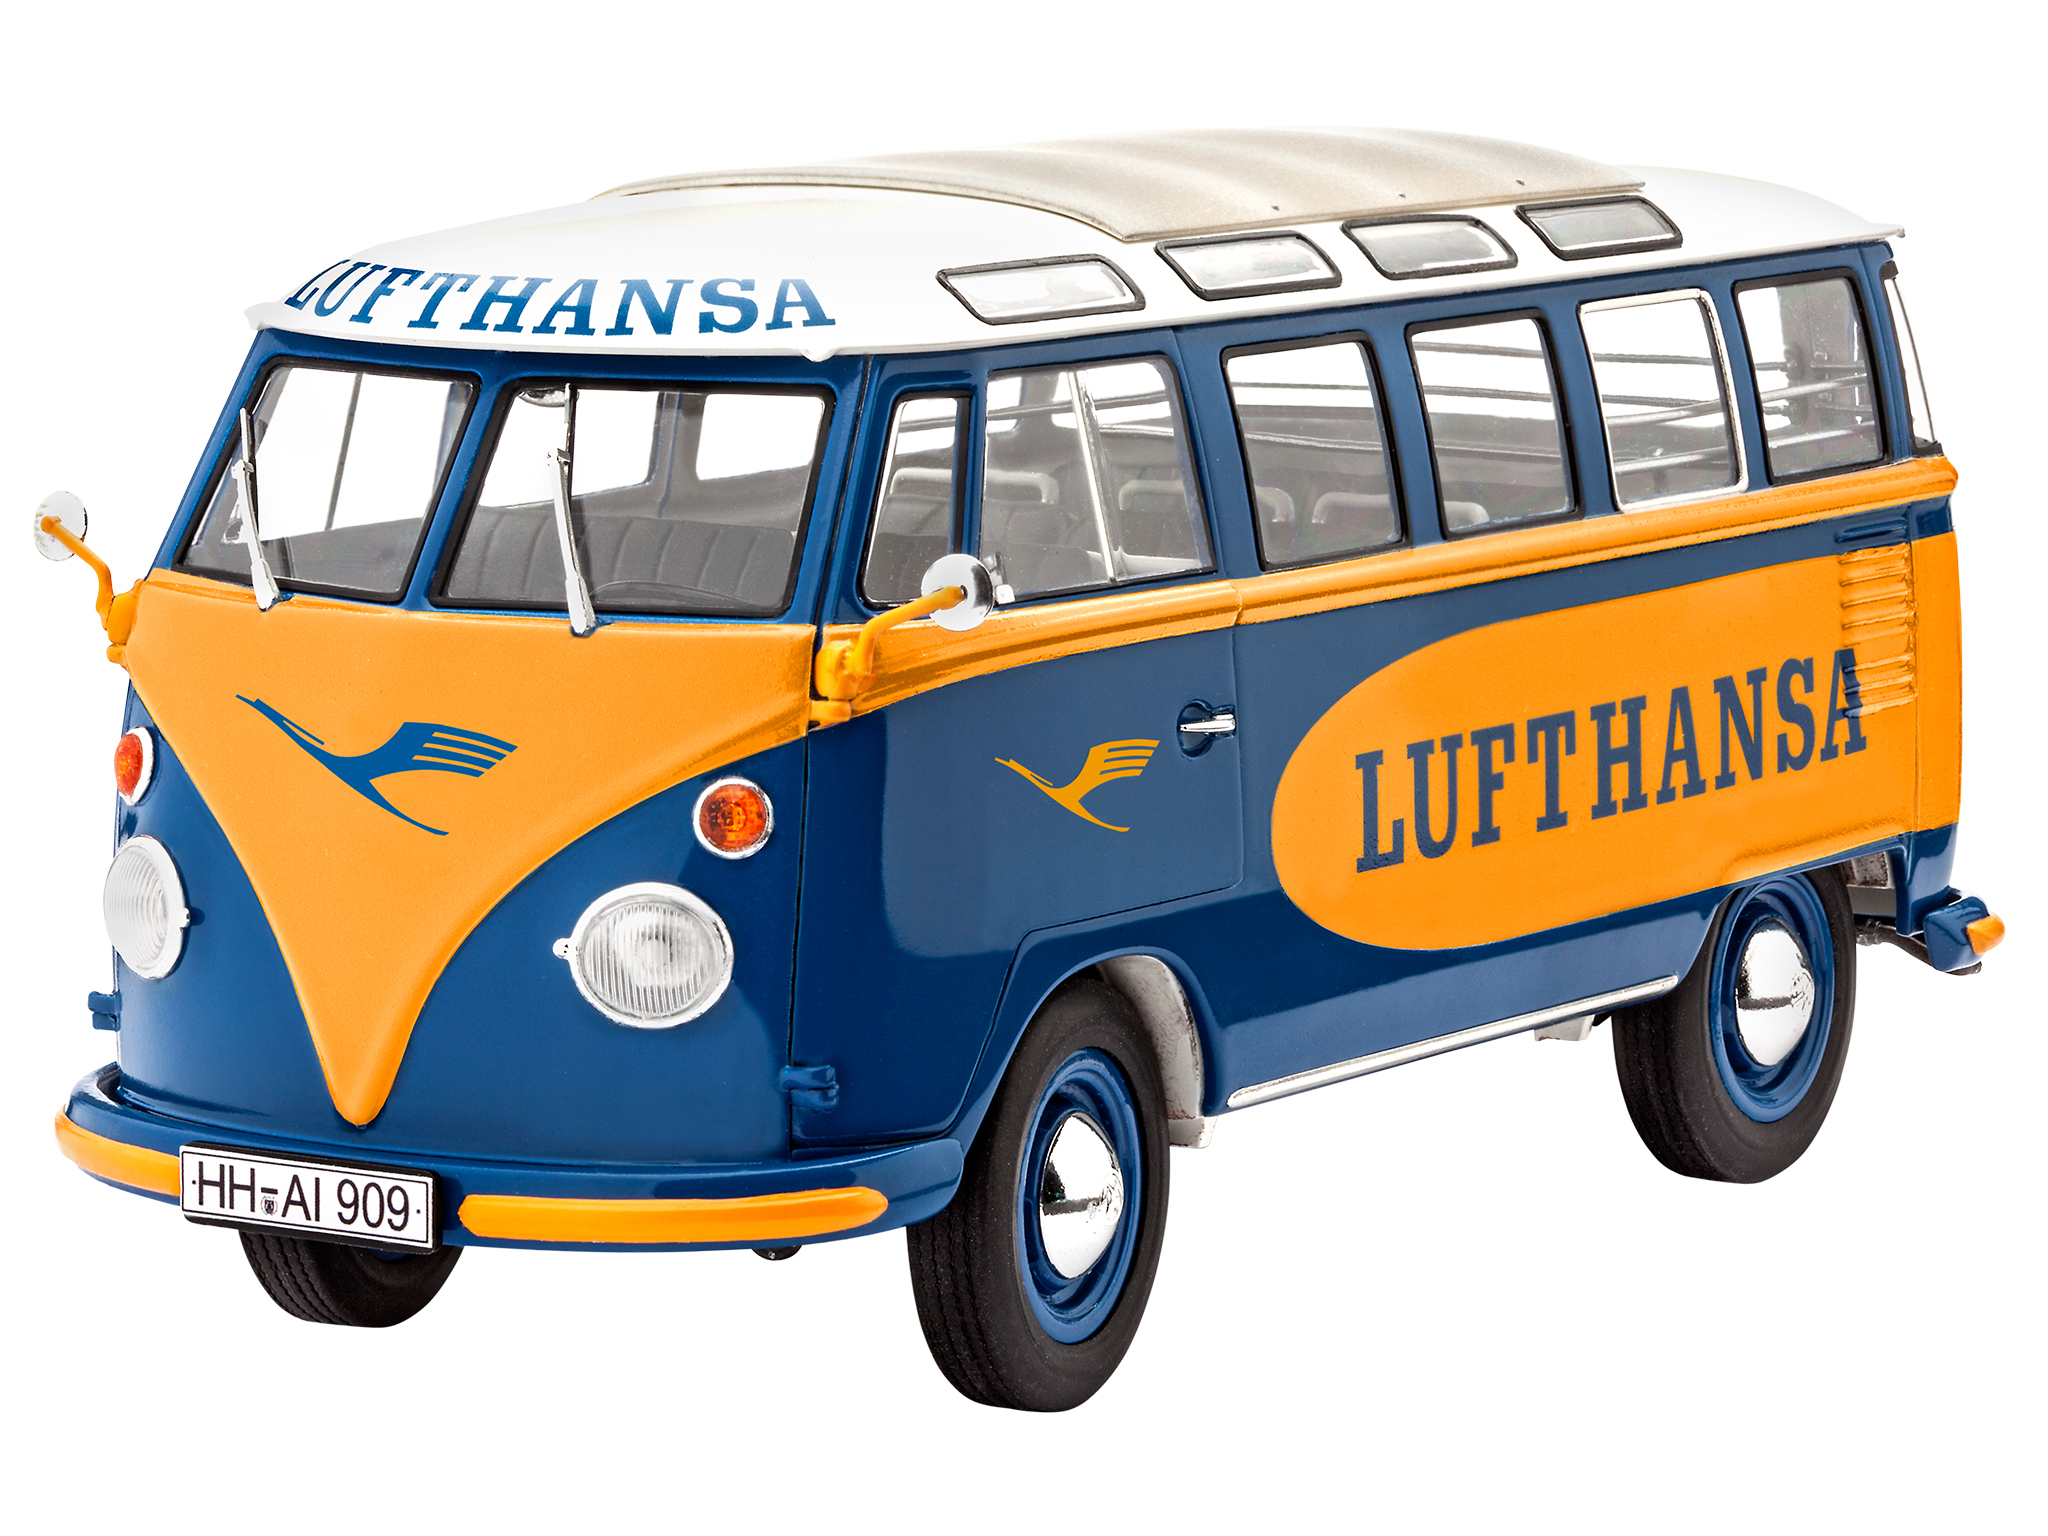 revell shop vw t1 samba bus lufthansa revell shop. Black Bedroom Furniture Sets. Home Design Ideas